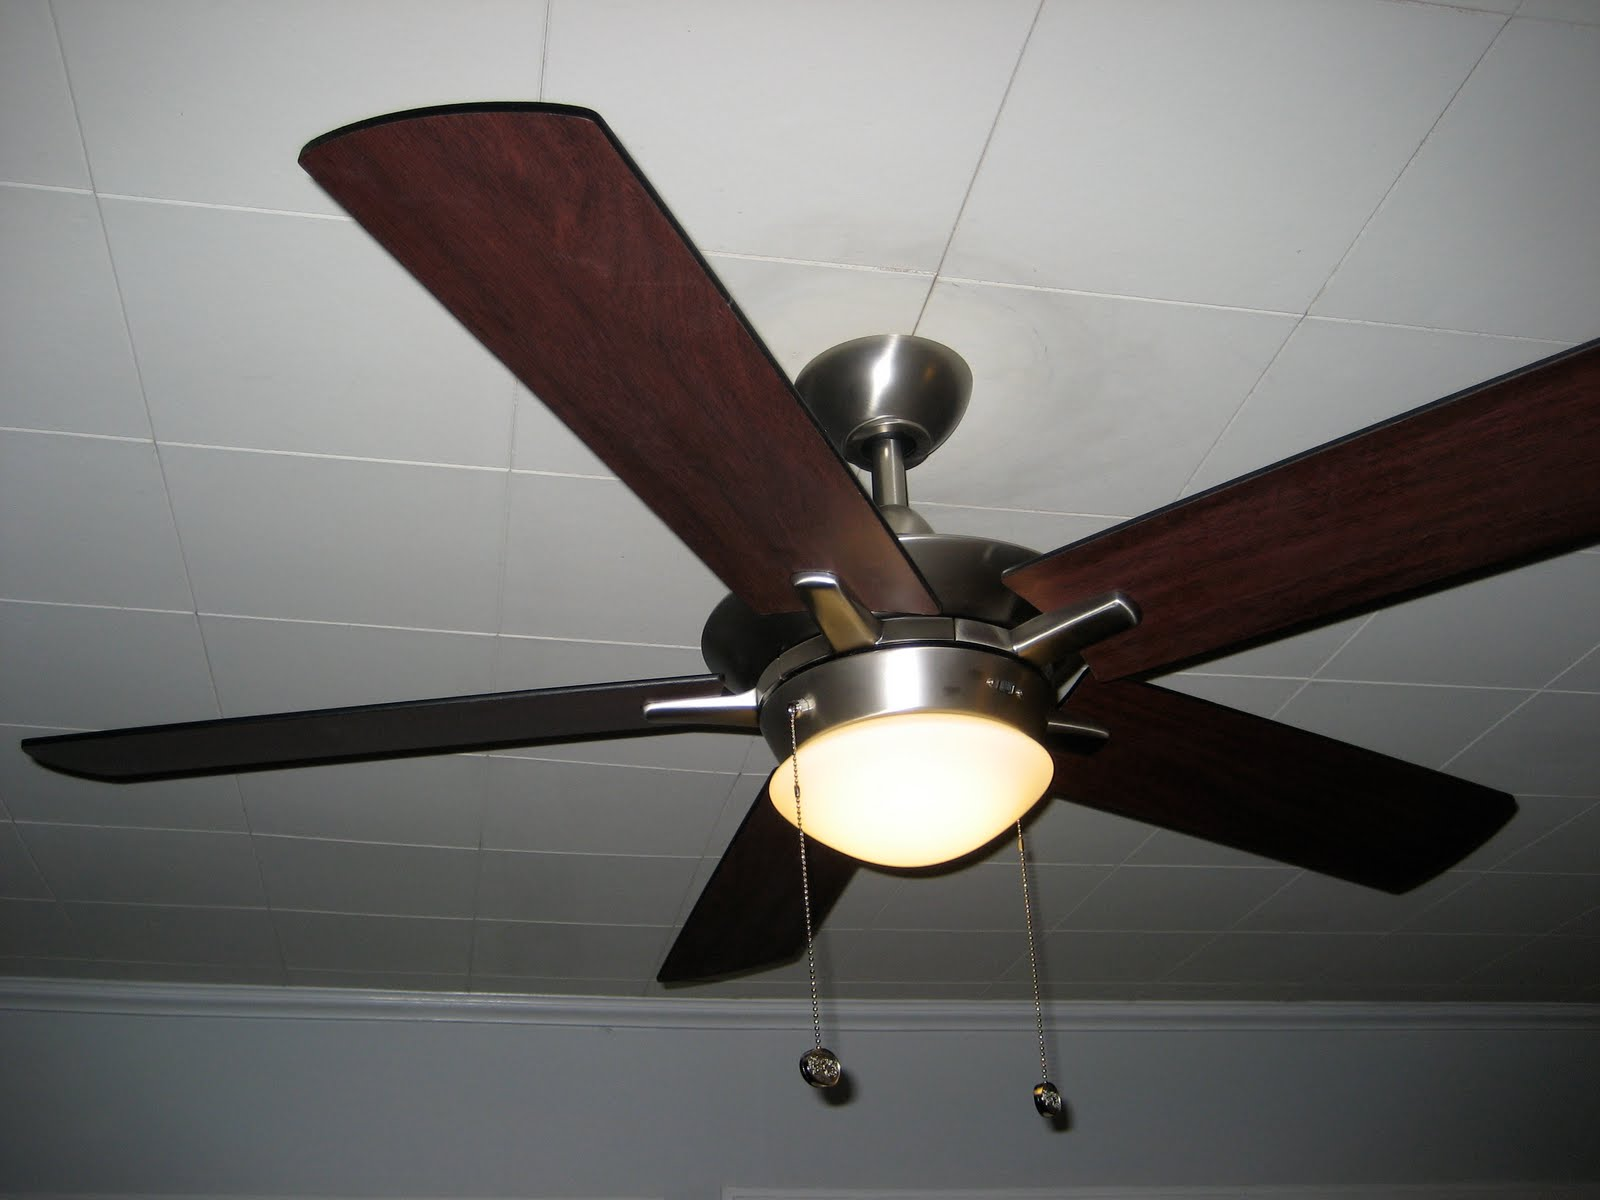 Top 25 Ceiling Fans Kids Of 2017